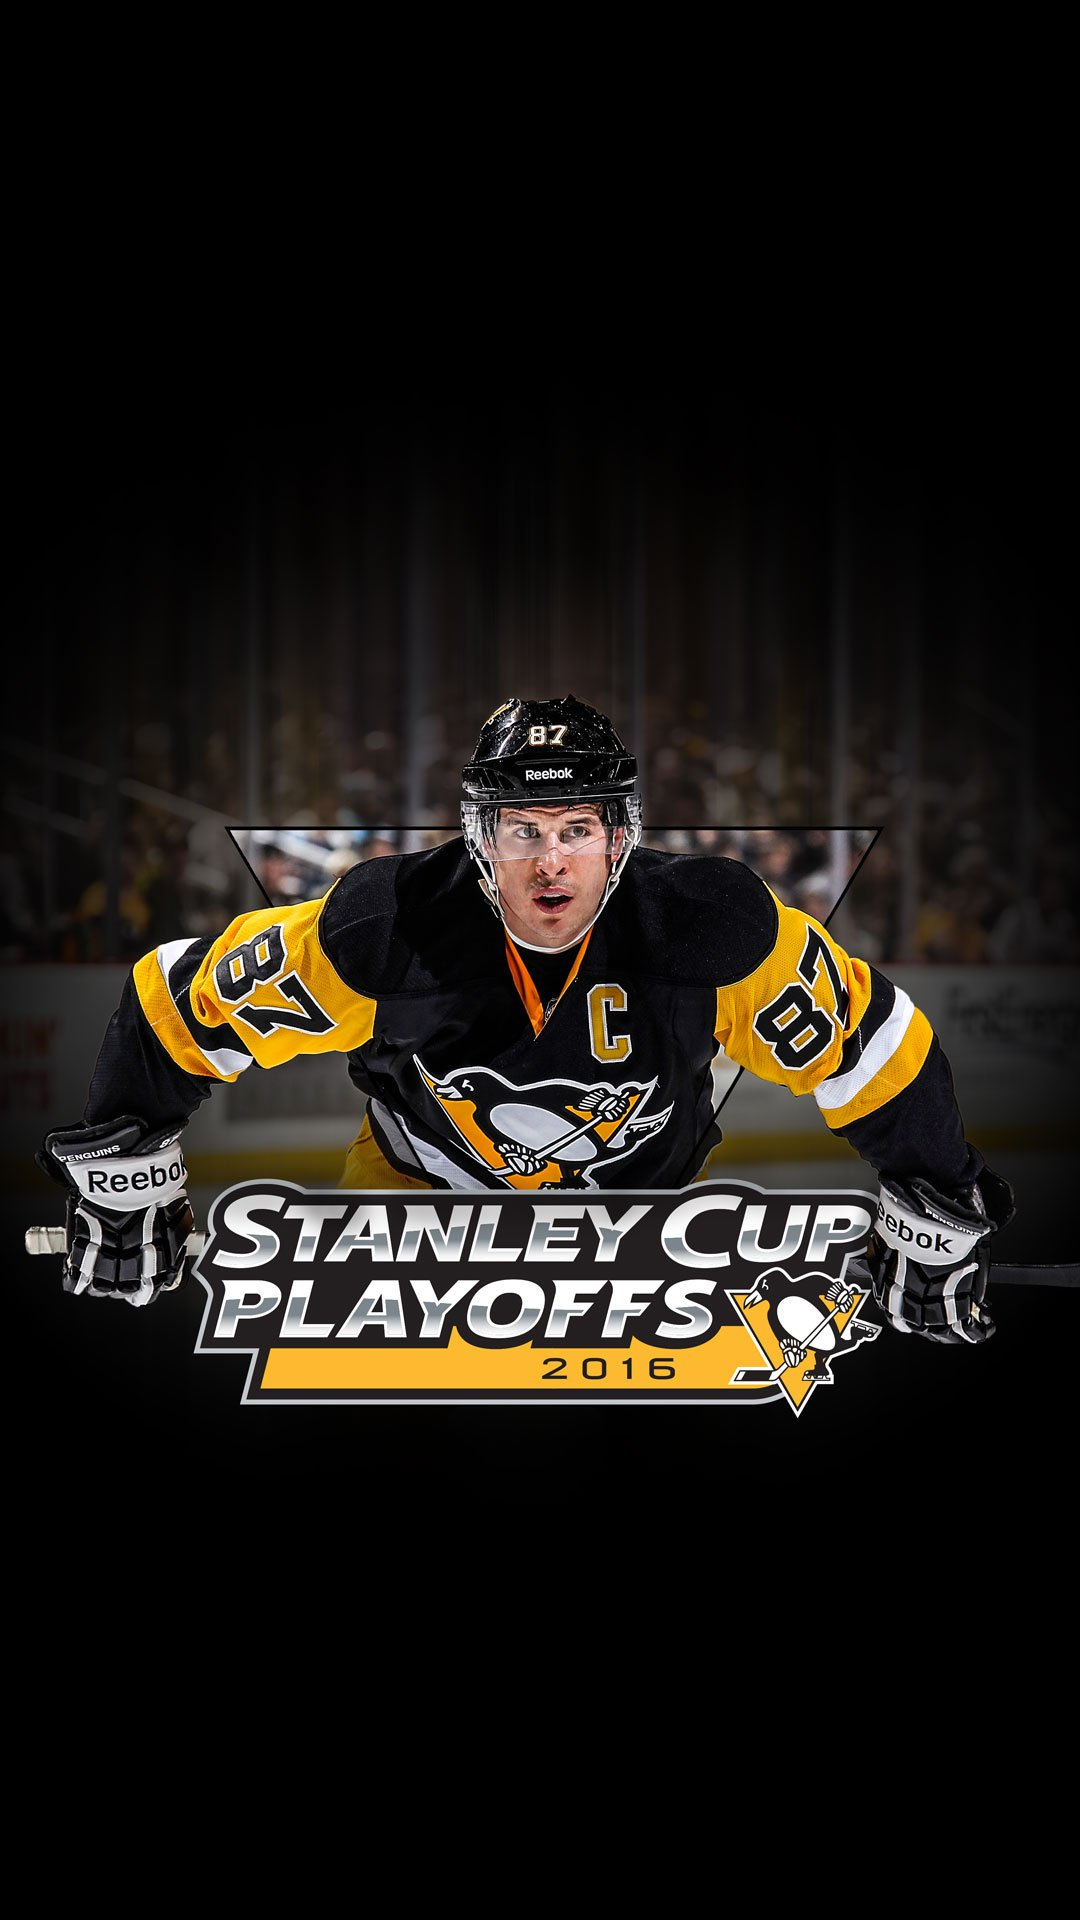 Pittsburgh Penguins On Twitter When Wallpaper Wednesday And The First Day Of Playoffs Are Same More Tco AY2mQdasPy